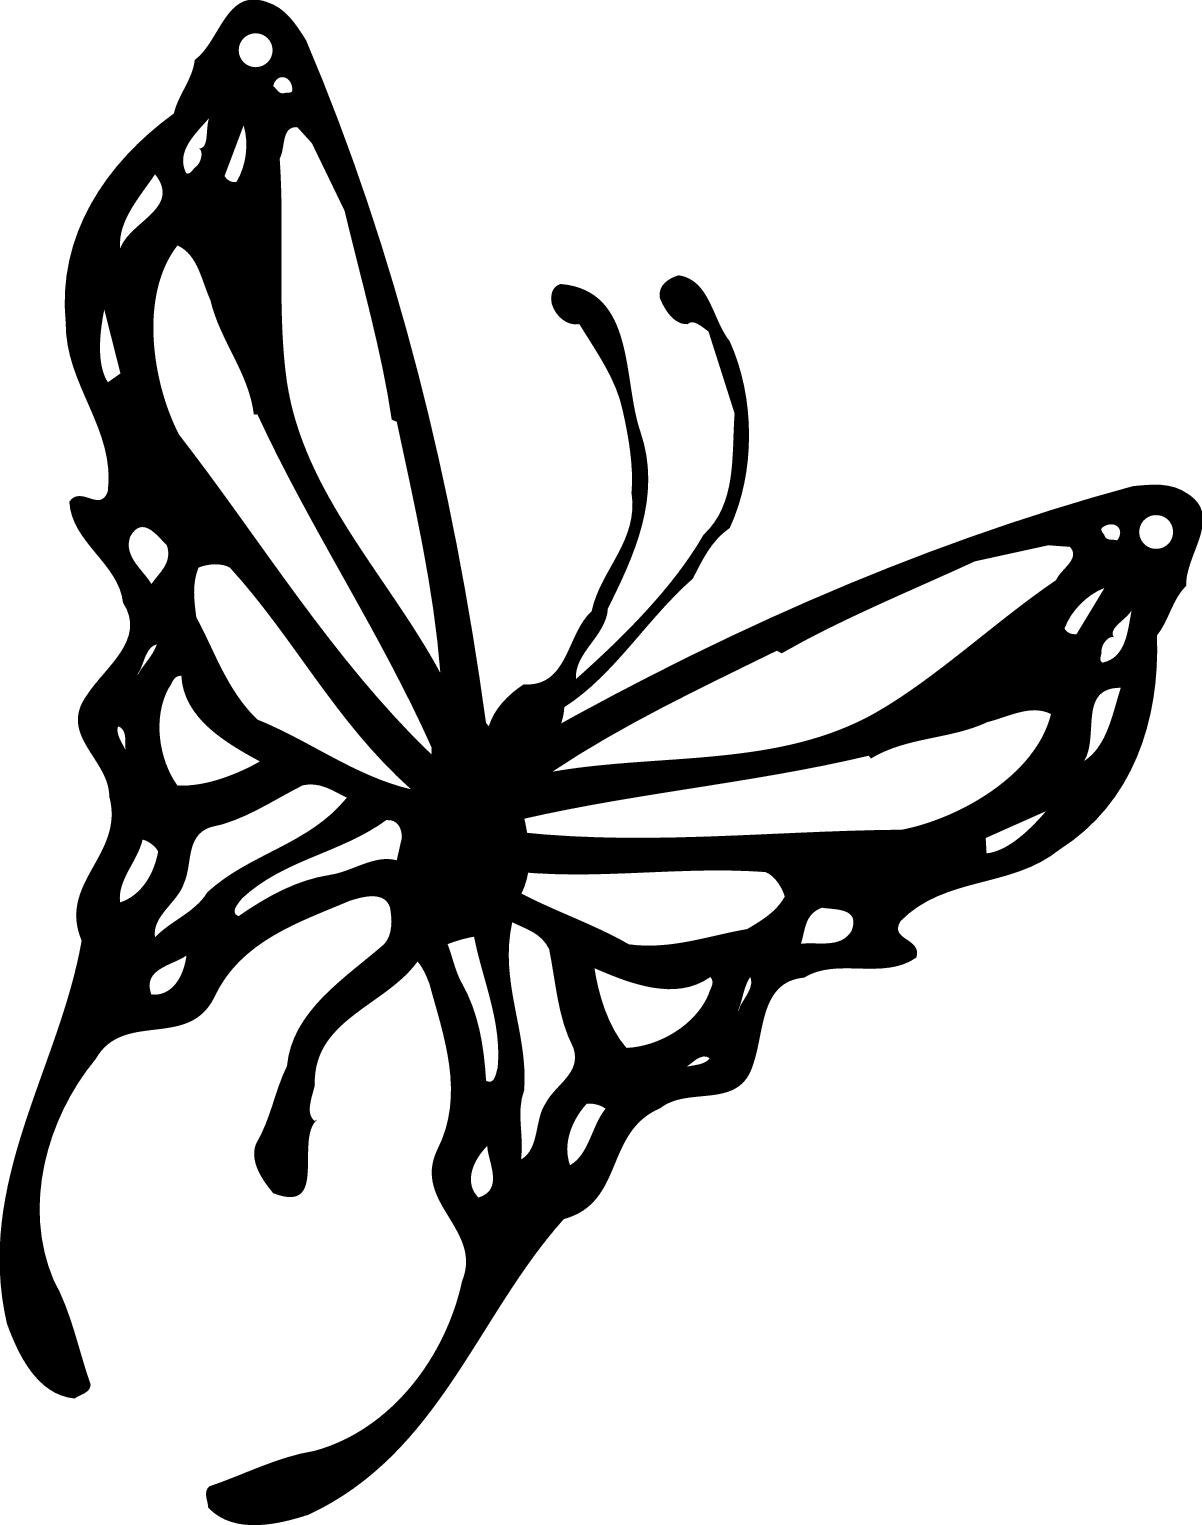 Free clipart butterfly images graphic black and white download Butterfly Outline Clipart | Clipart Panda - Free Clipart Images graphic black and white download